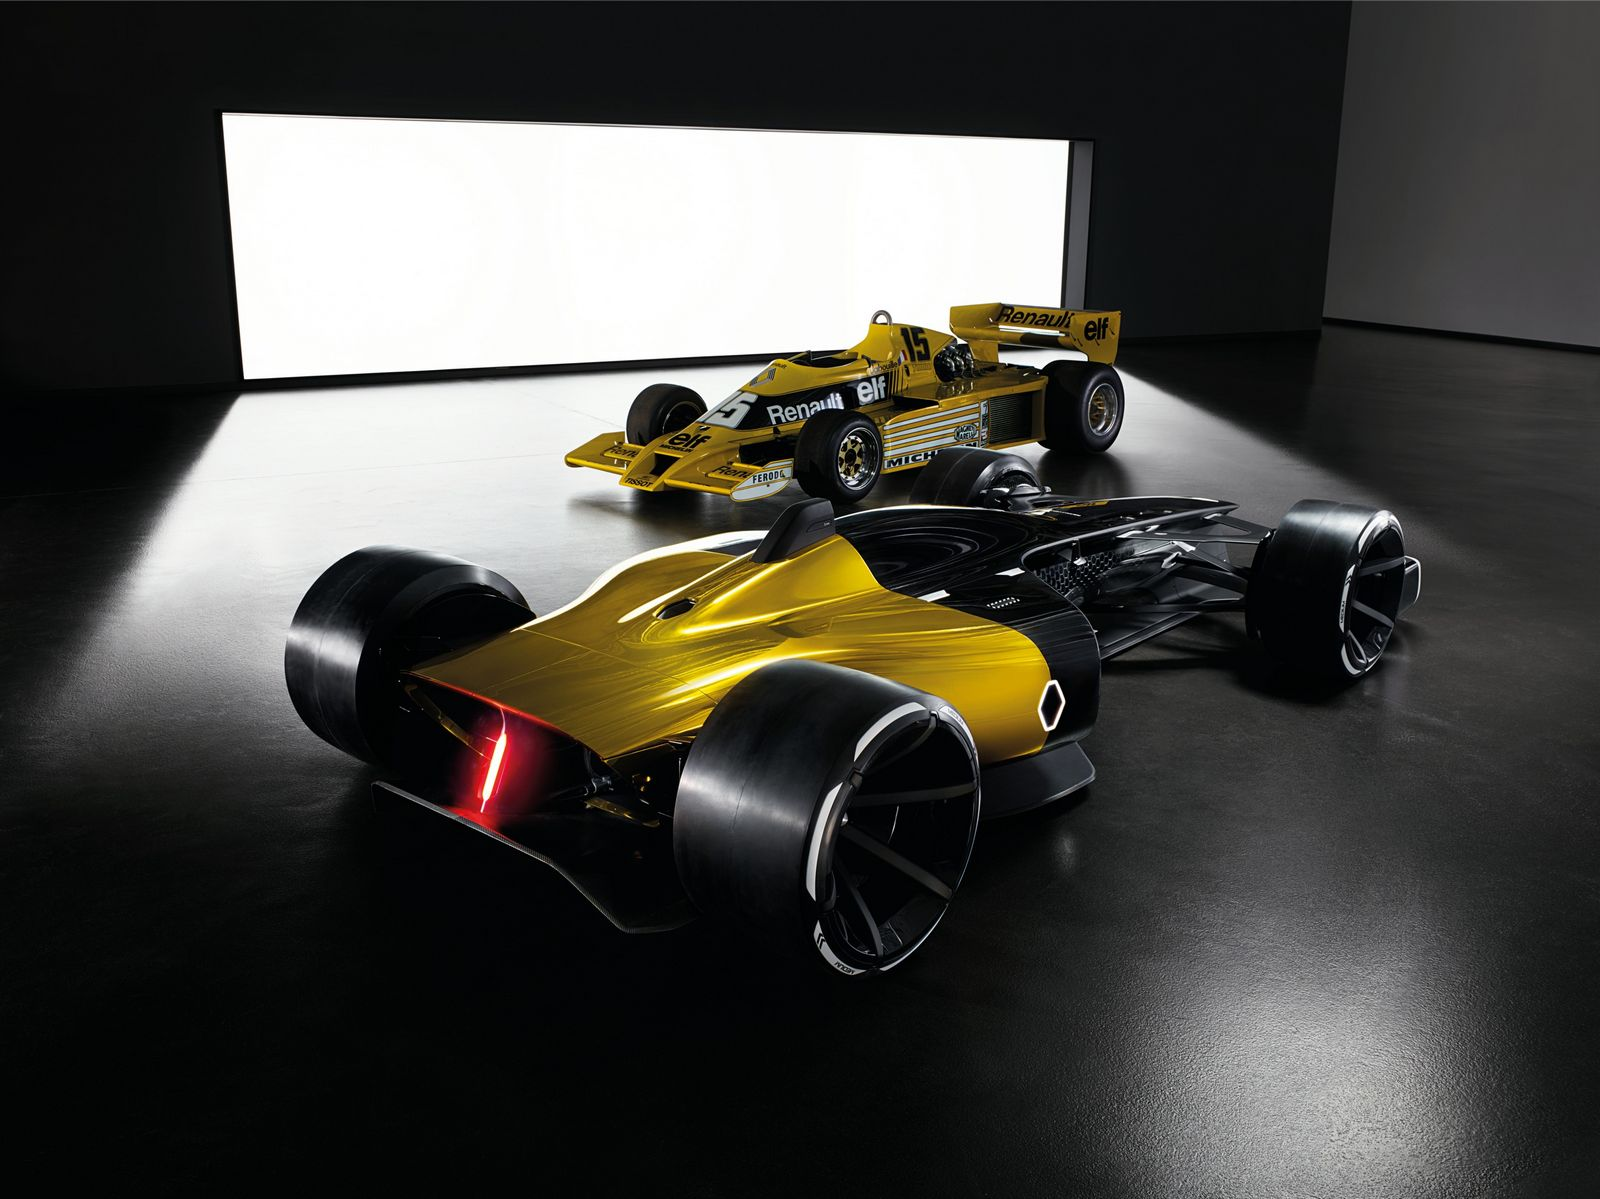 Renault RS 2027 Vision concept (9)